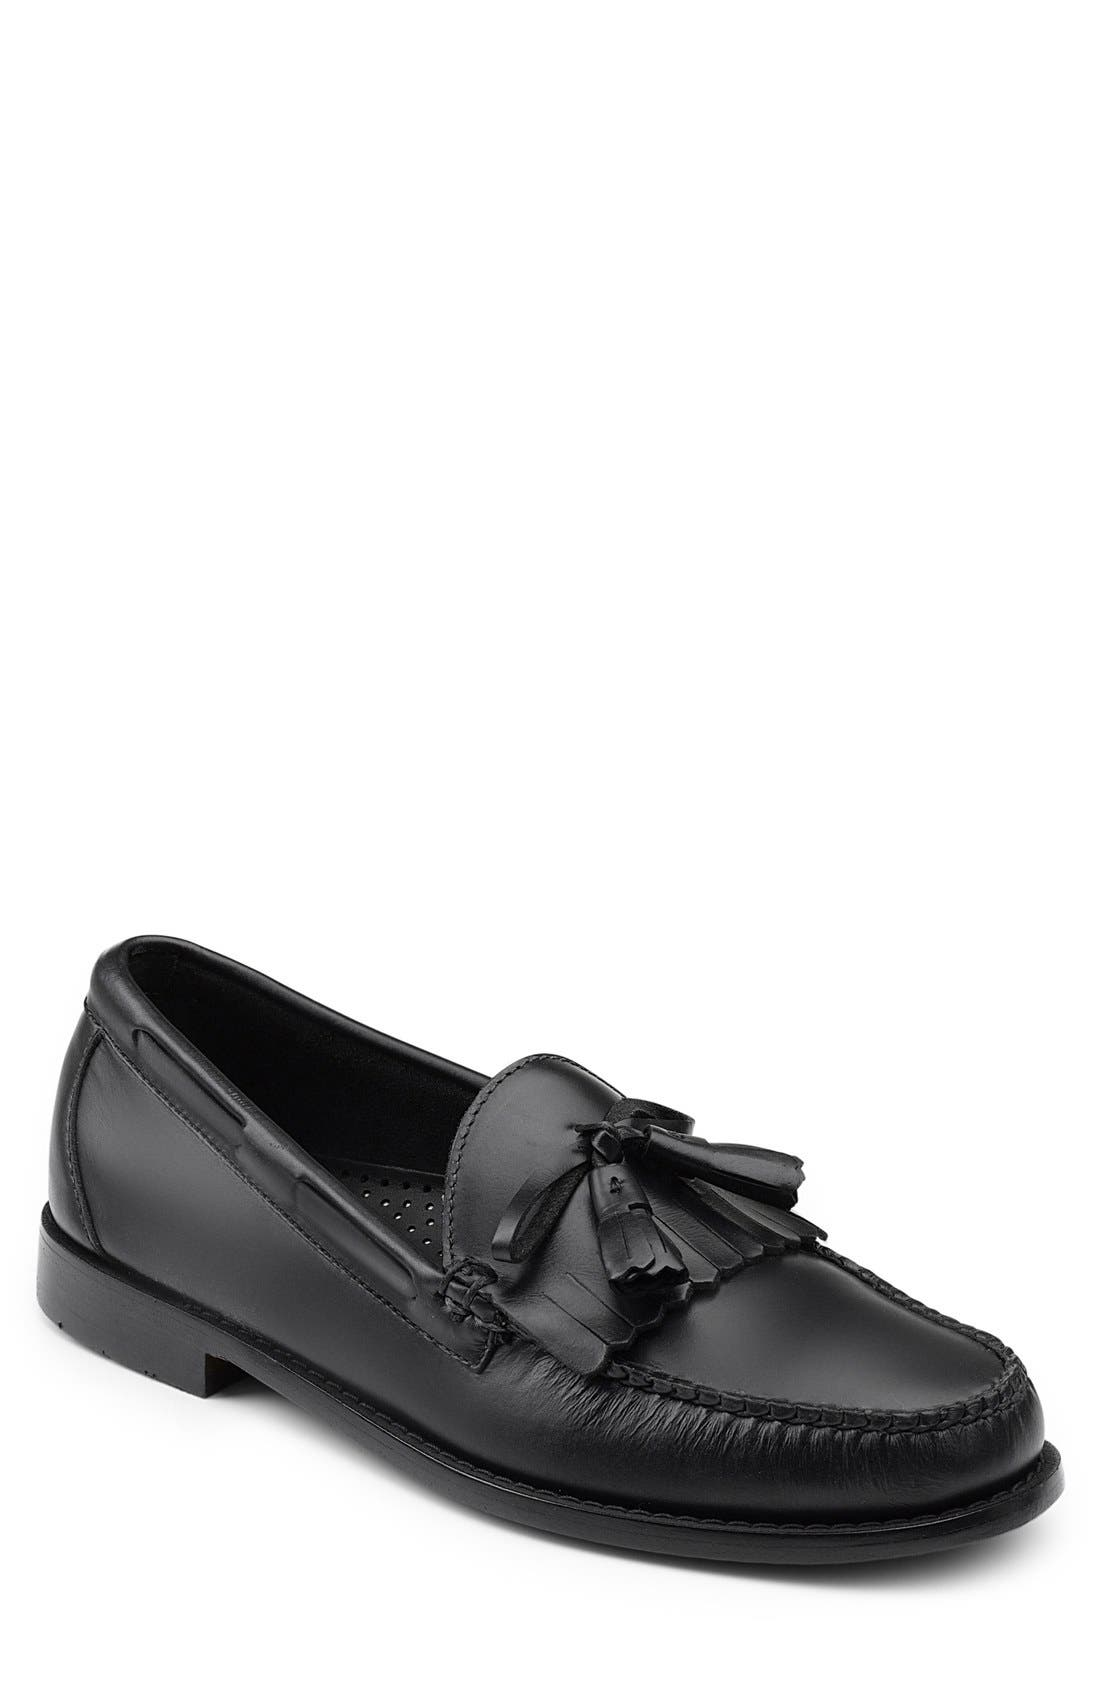 'Lawrence' Tassel Loafer,                             Alternate thumbnail 10, color,